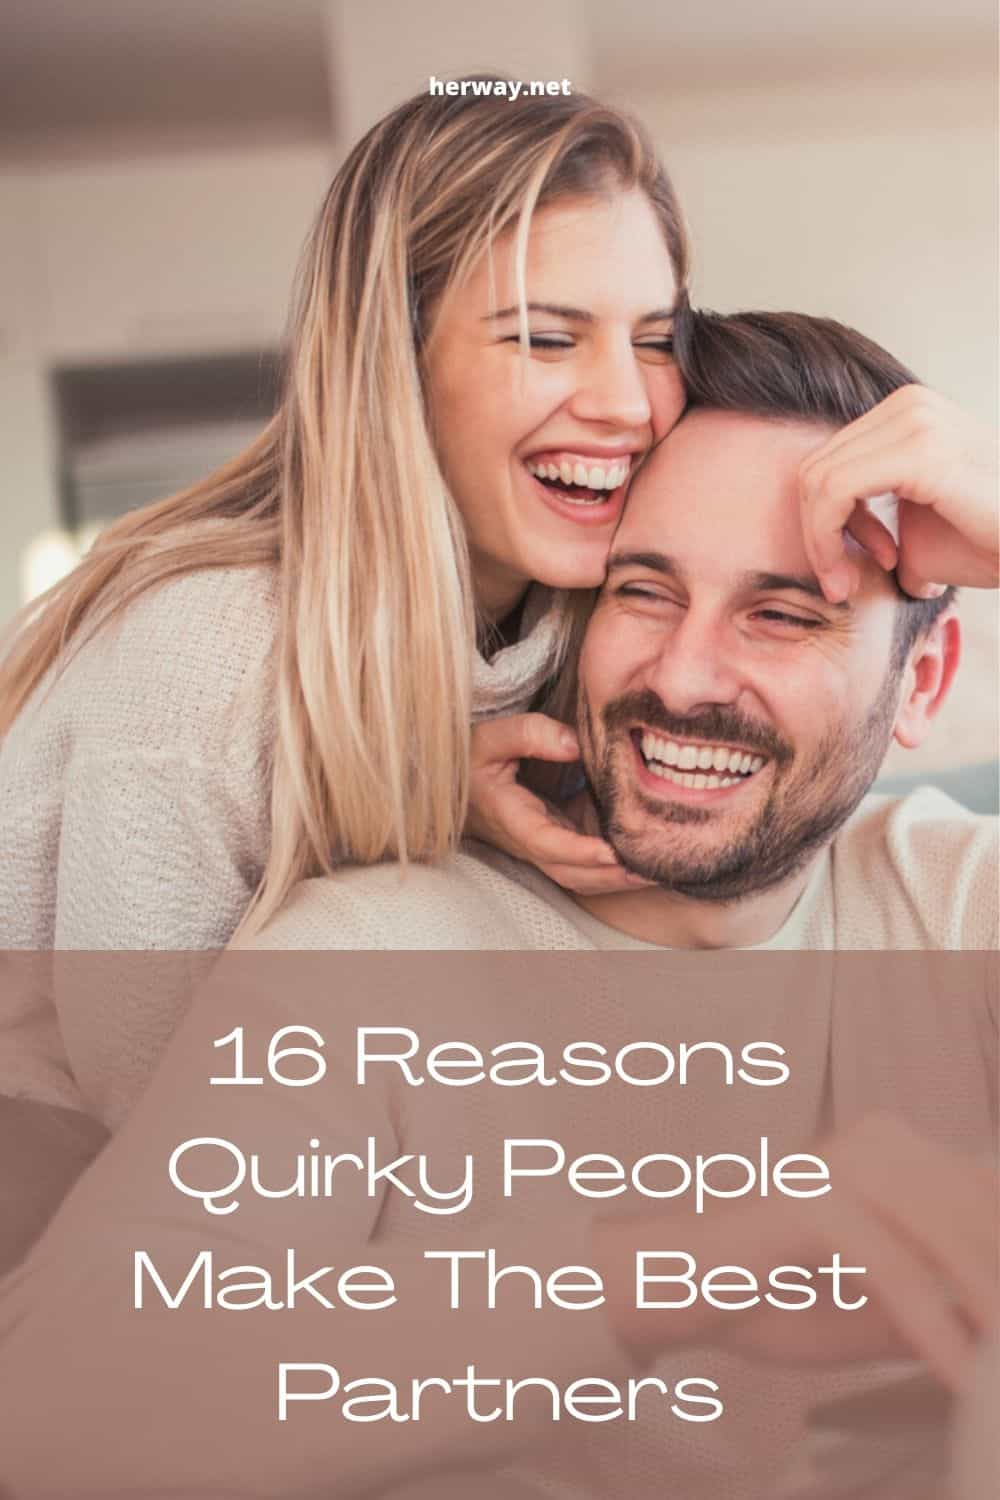 16 Reasons Quirky People Make The Best Partners